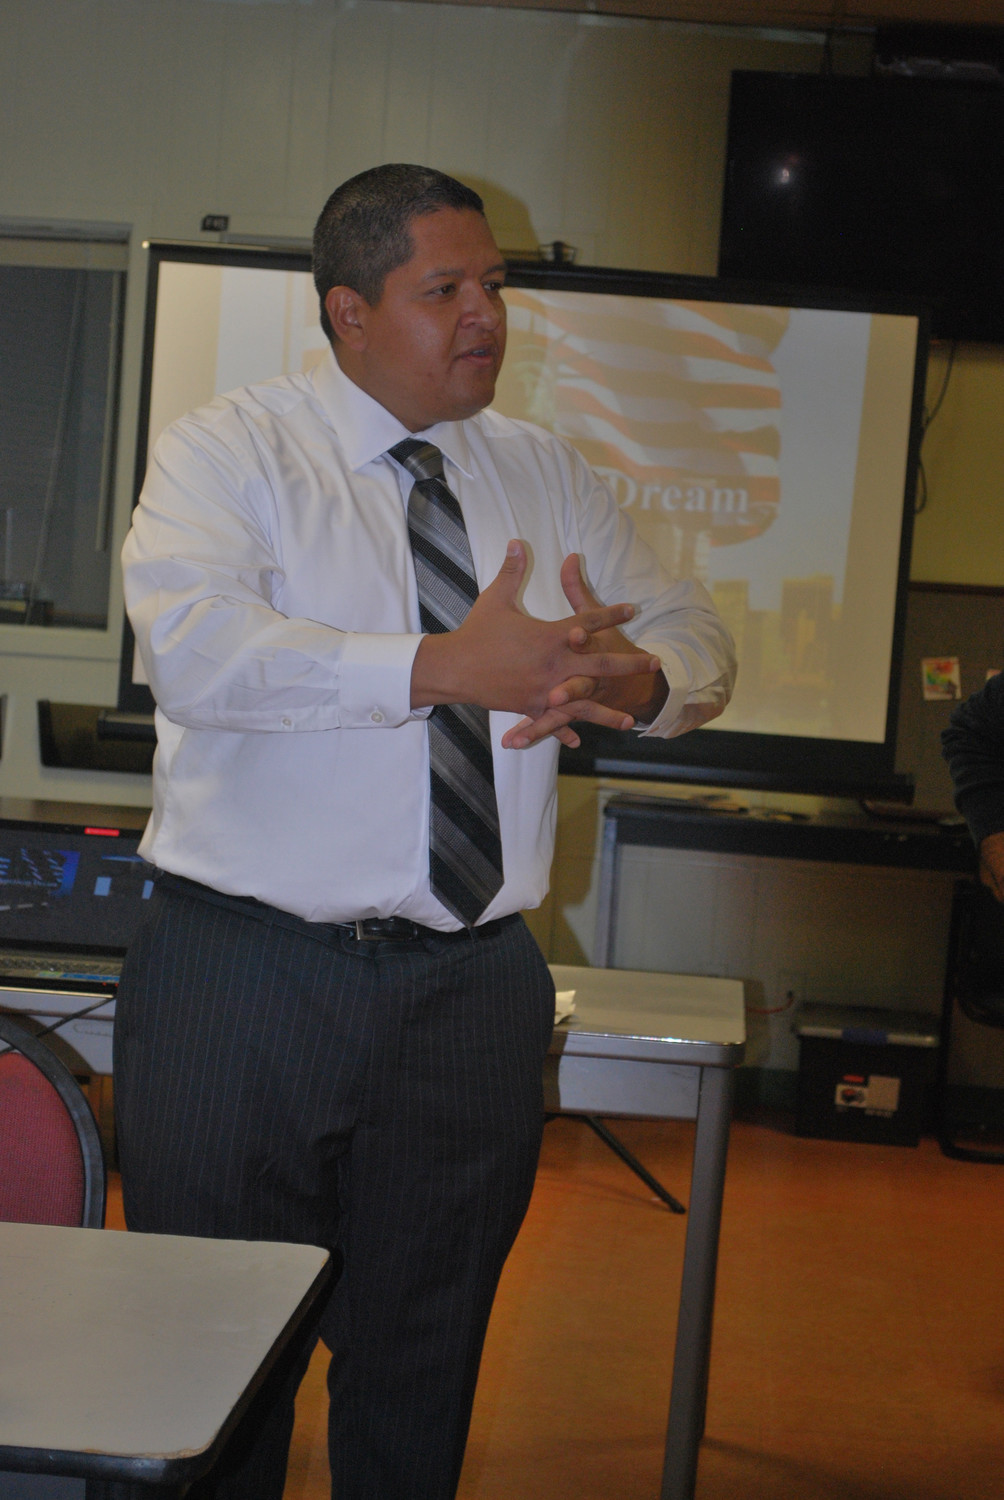 Oceanside business owner and resident Juan Vides announced his intention to seek public office at the Five Towns Hispanic Association meeting on Nov. 22.